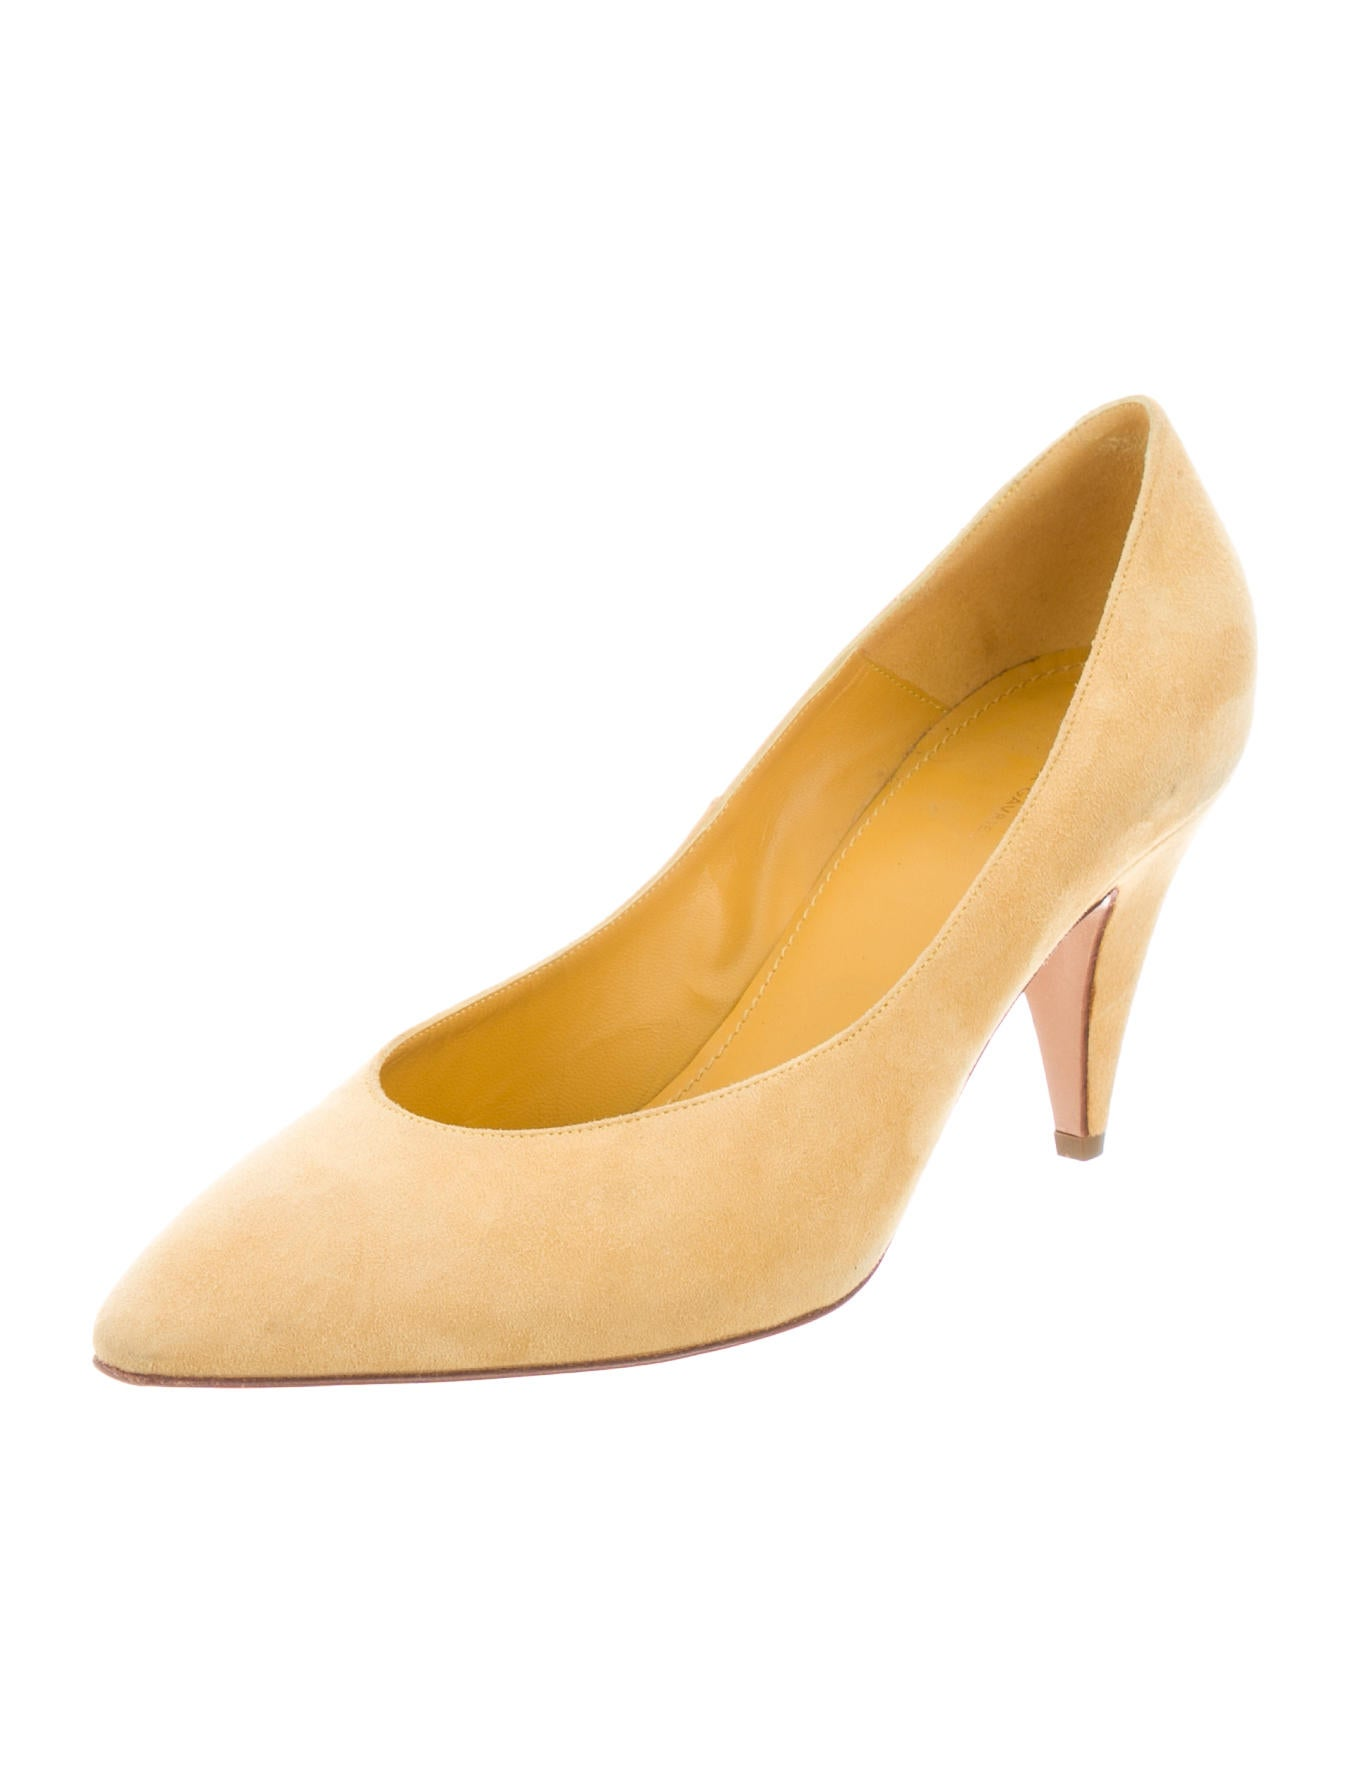 Mansur Gavriel Semi Pointed-Toe Leather Pumps cheap sale very cheap release dates cheap online HqhcwHGS